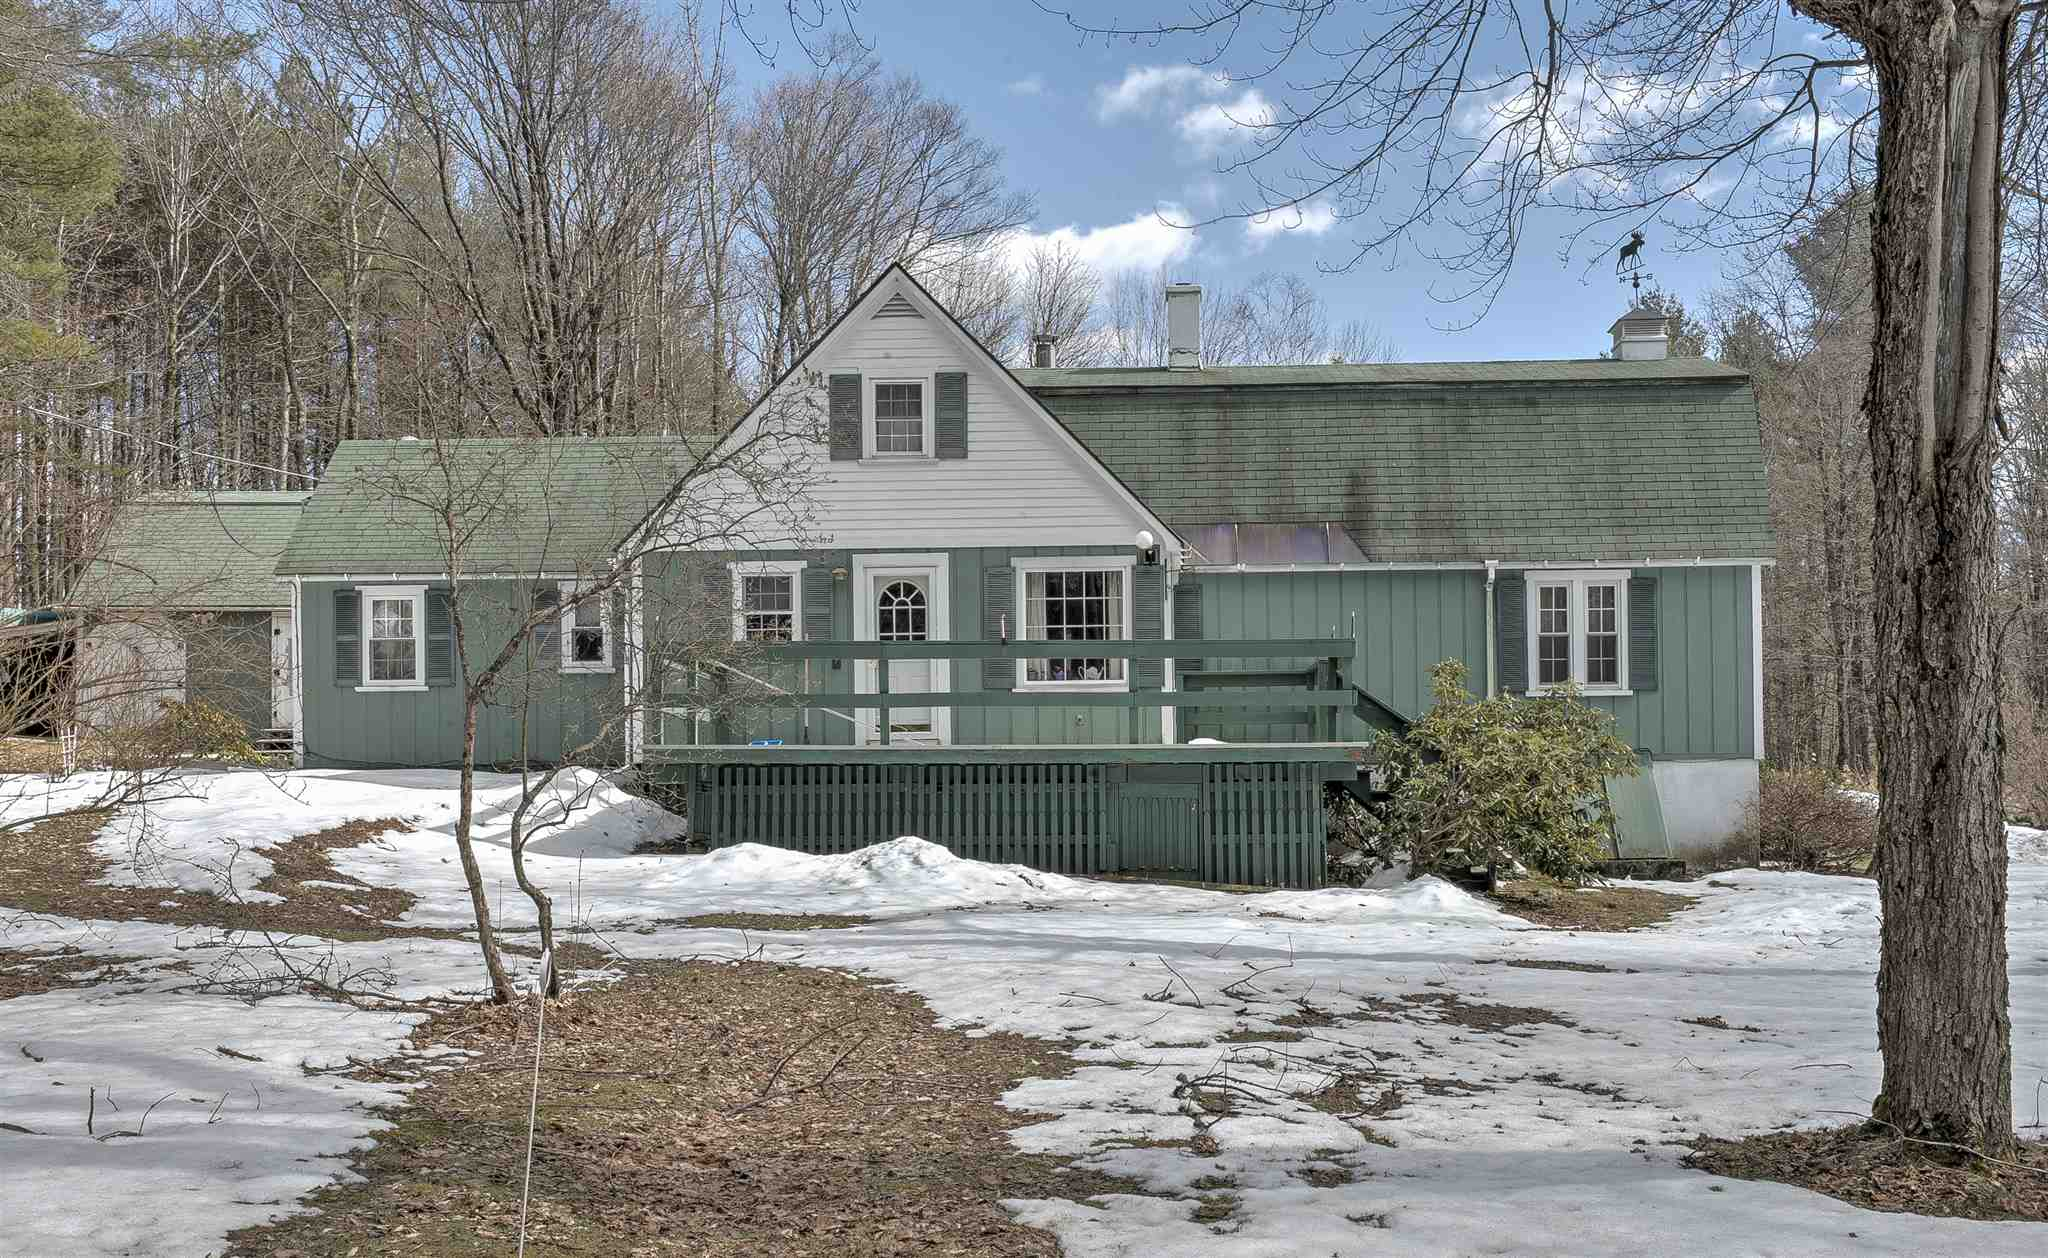 MLS 4796894: 232 Reed Road, Gilsum NH